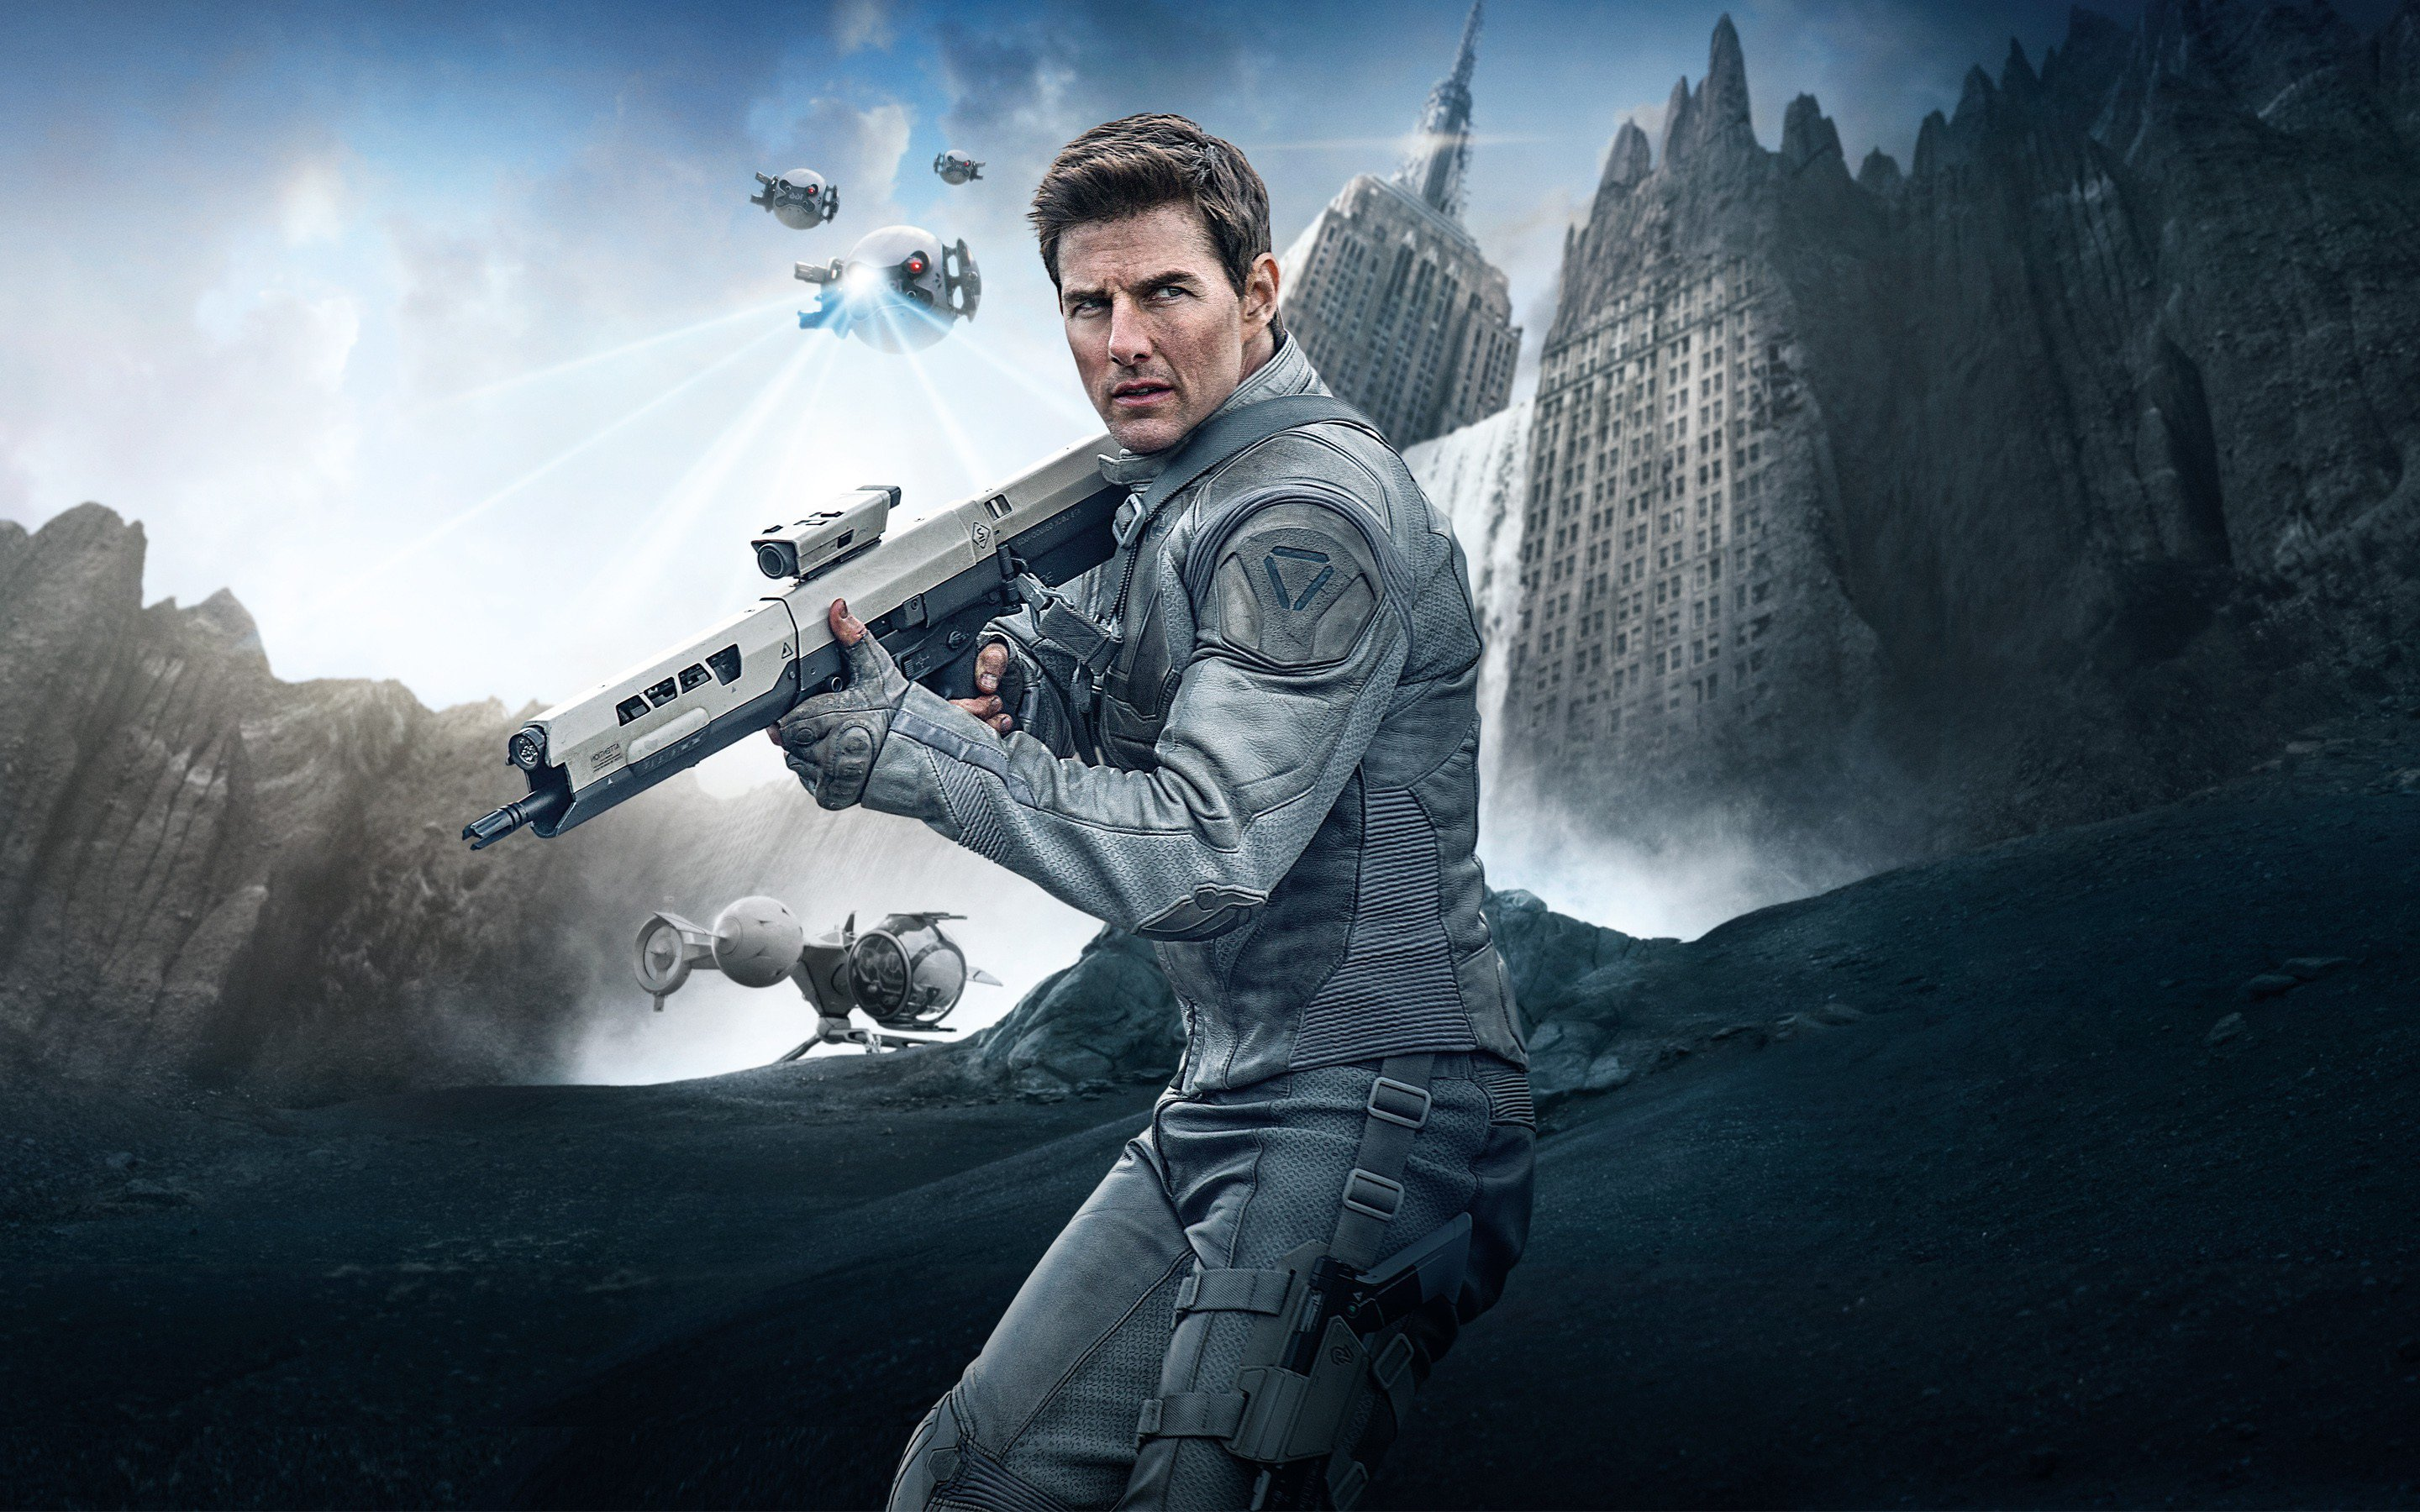 tom cruise in oblivion, hd movies, 4k wallpapers, images